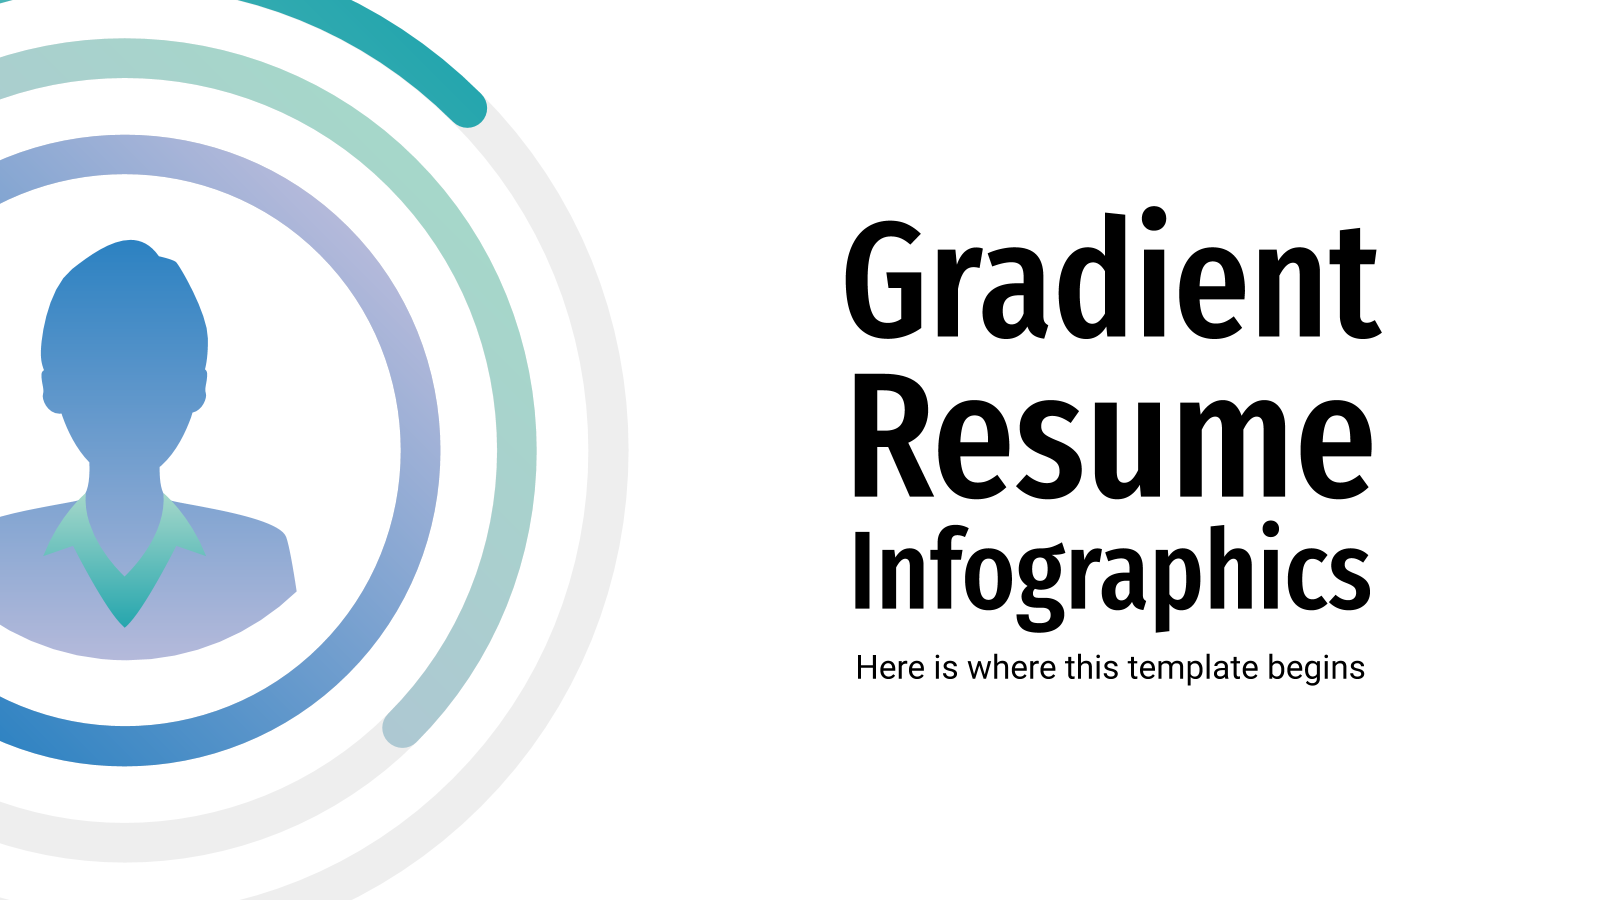 Gradient Resume Infographics presentation template